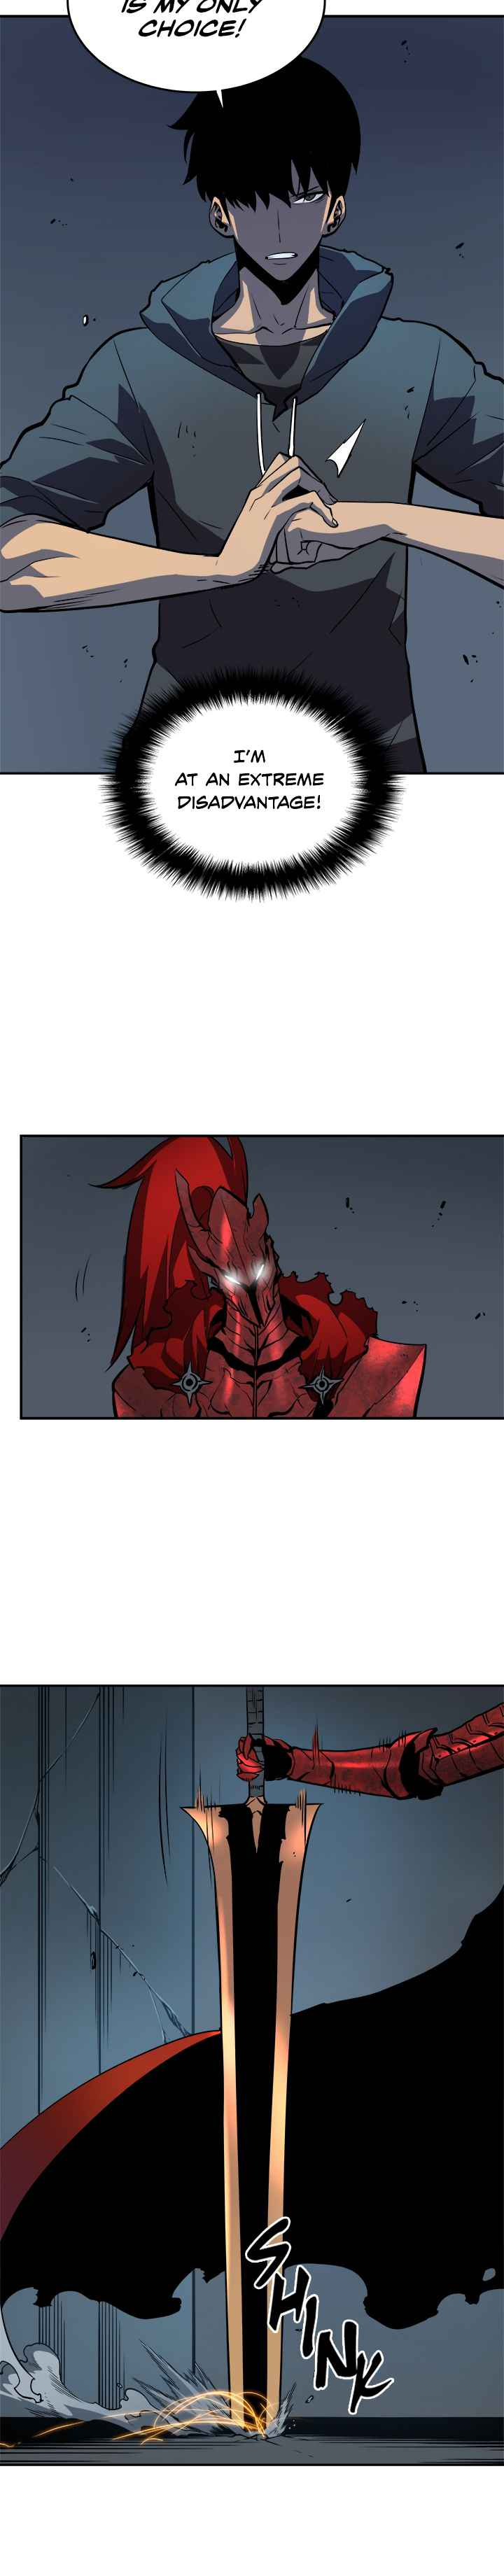 Solo Leveling Chapter 39 Page 13